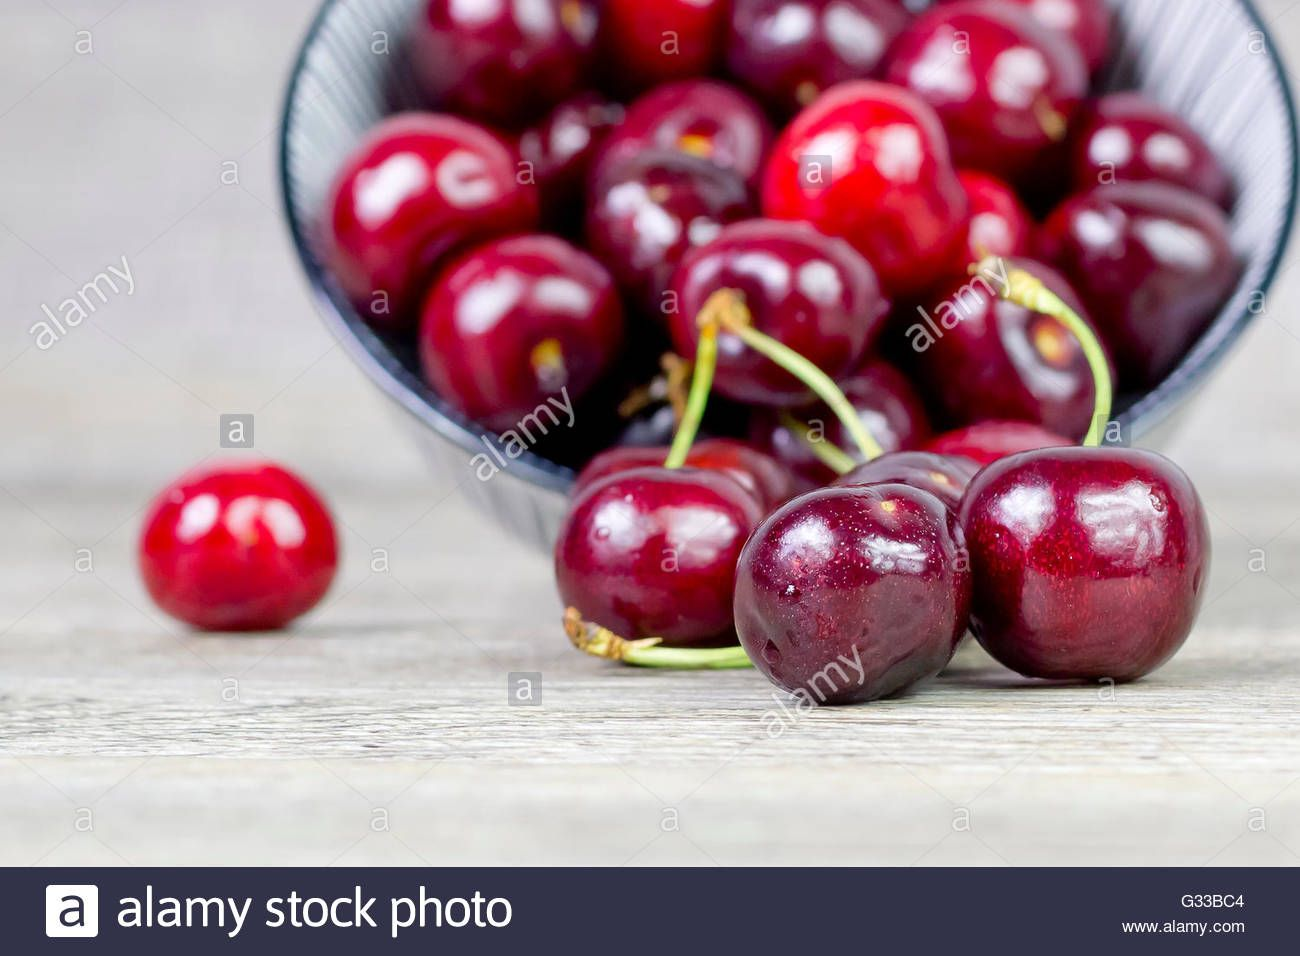 Download this stock image: Cherries on a wooden surface - G33BC4 from Alamy's library of millions of high resolution stock photos, illustrations and vectors.